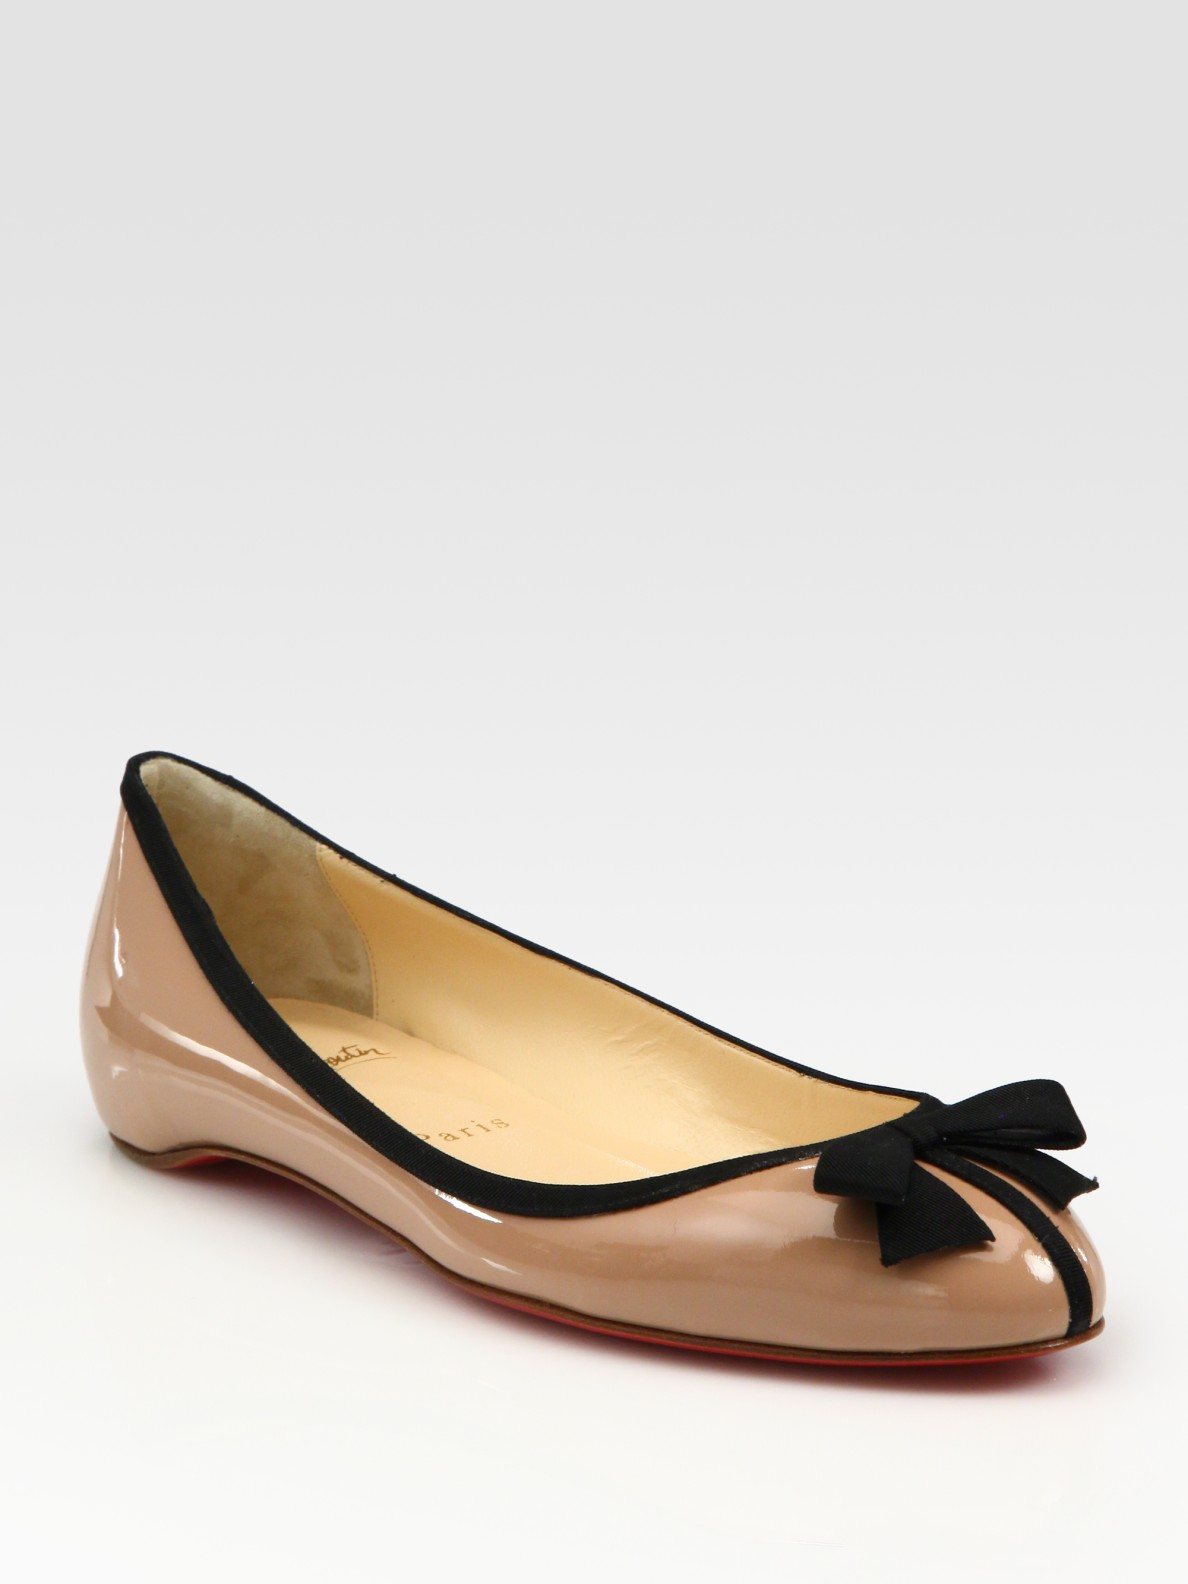 buy popular ce236 4b40a coupon code christian louboutin gloriana ballet flats d9755 ...